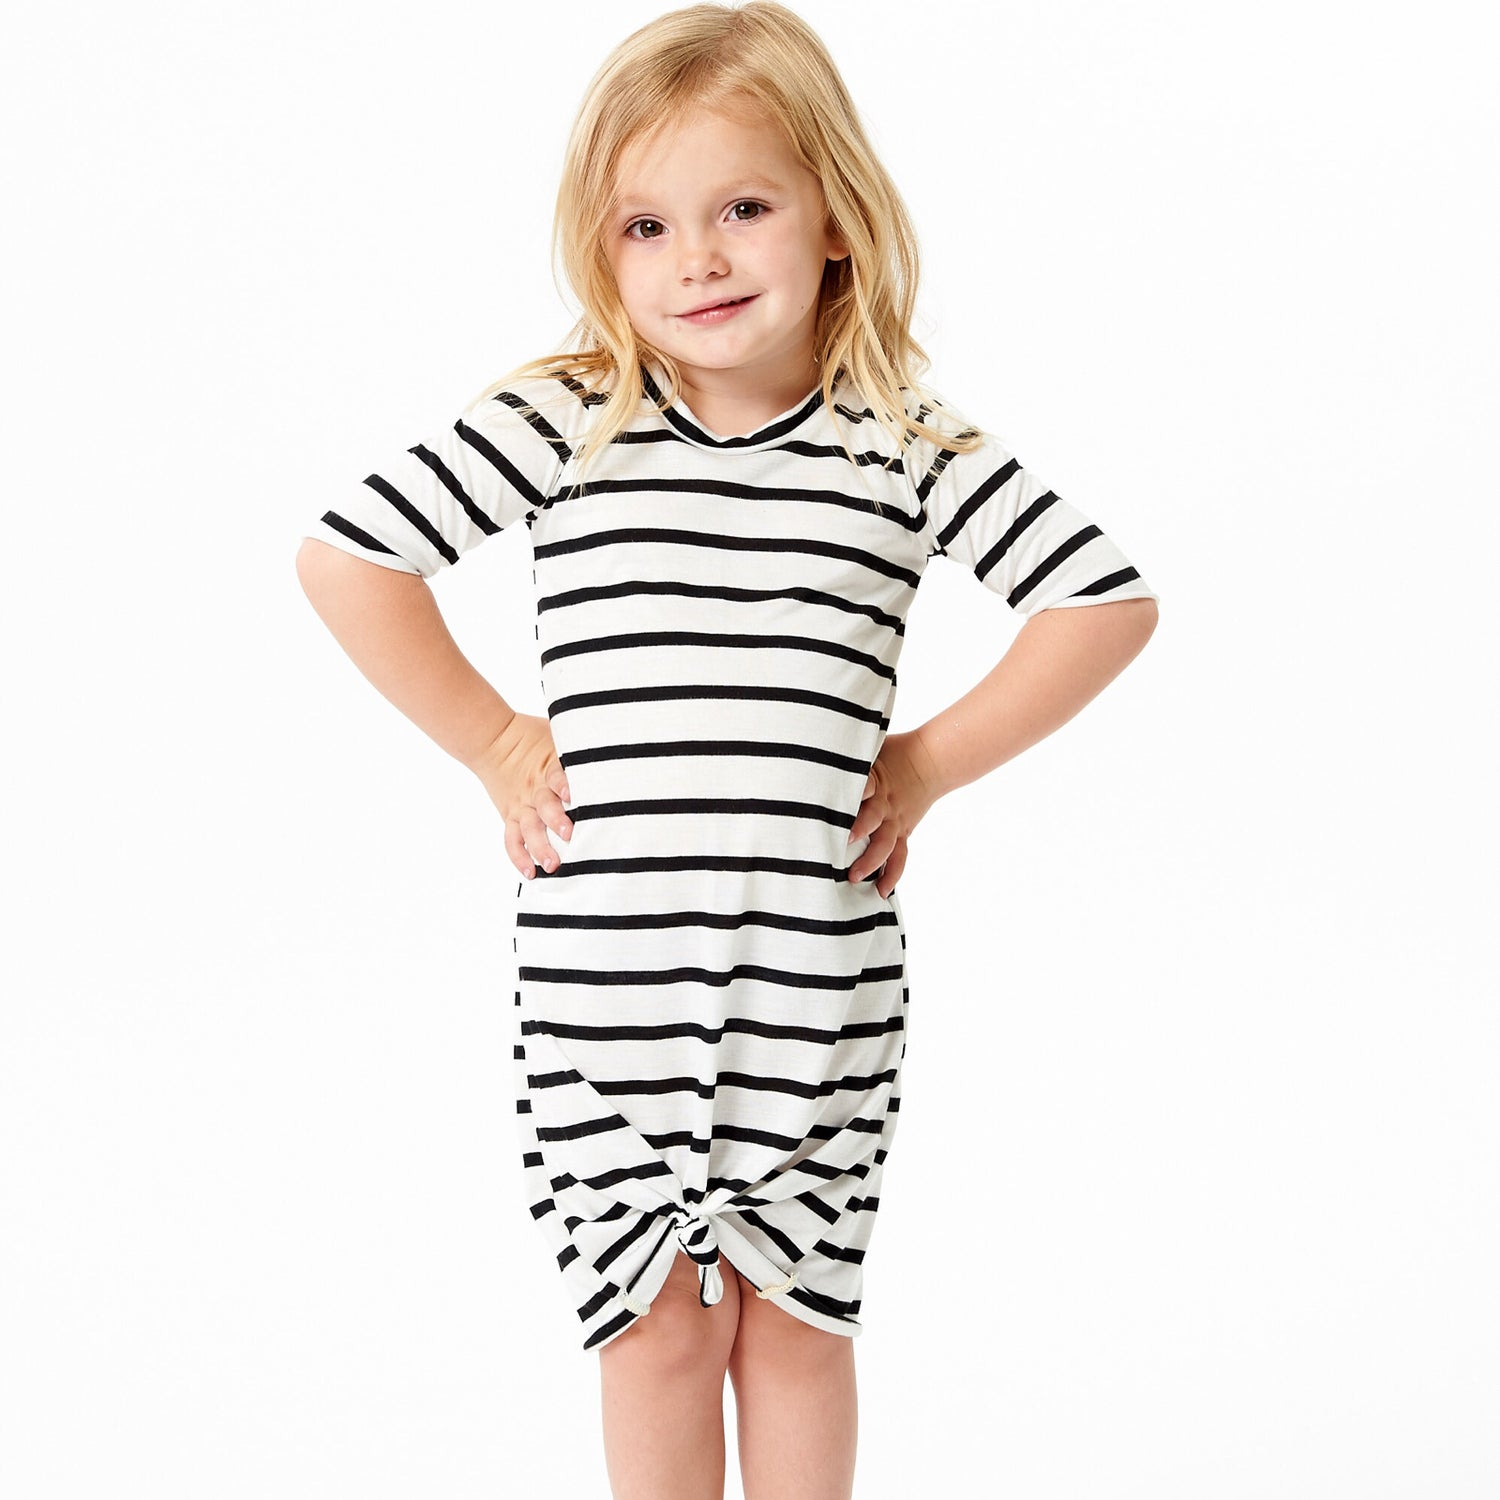 Image of Baby/girls white pinstriped knot knit dress